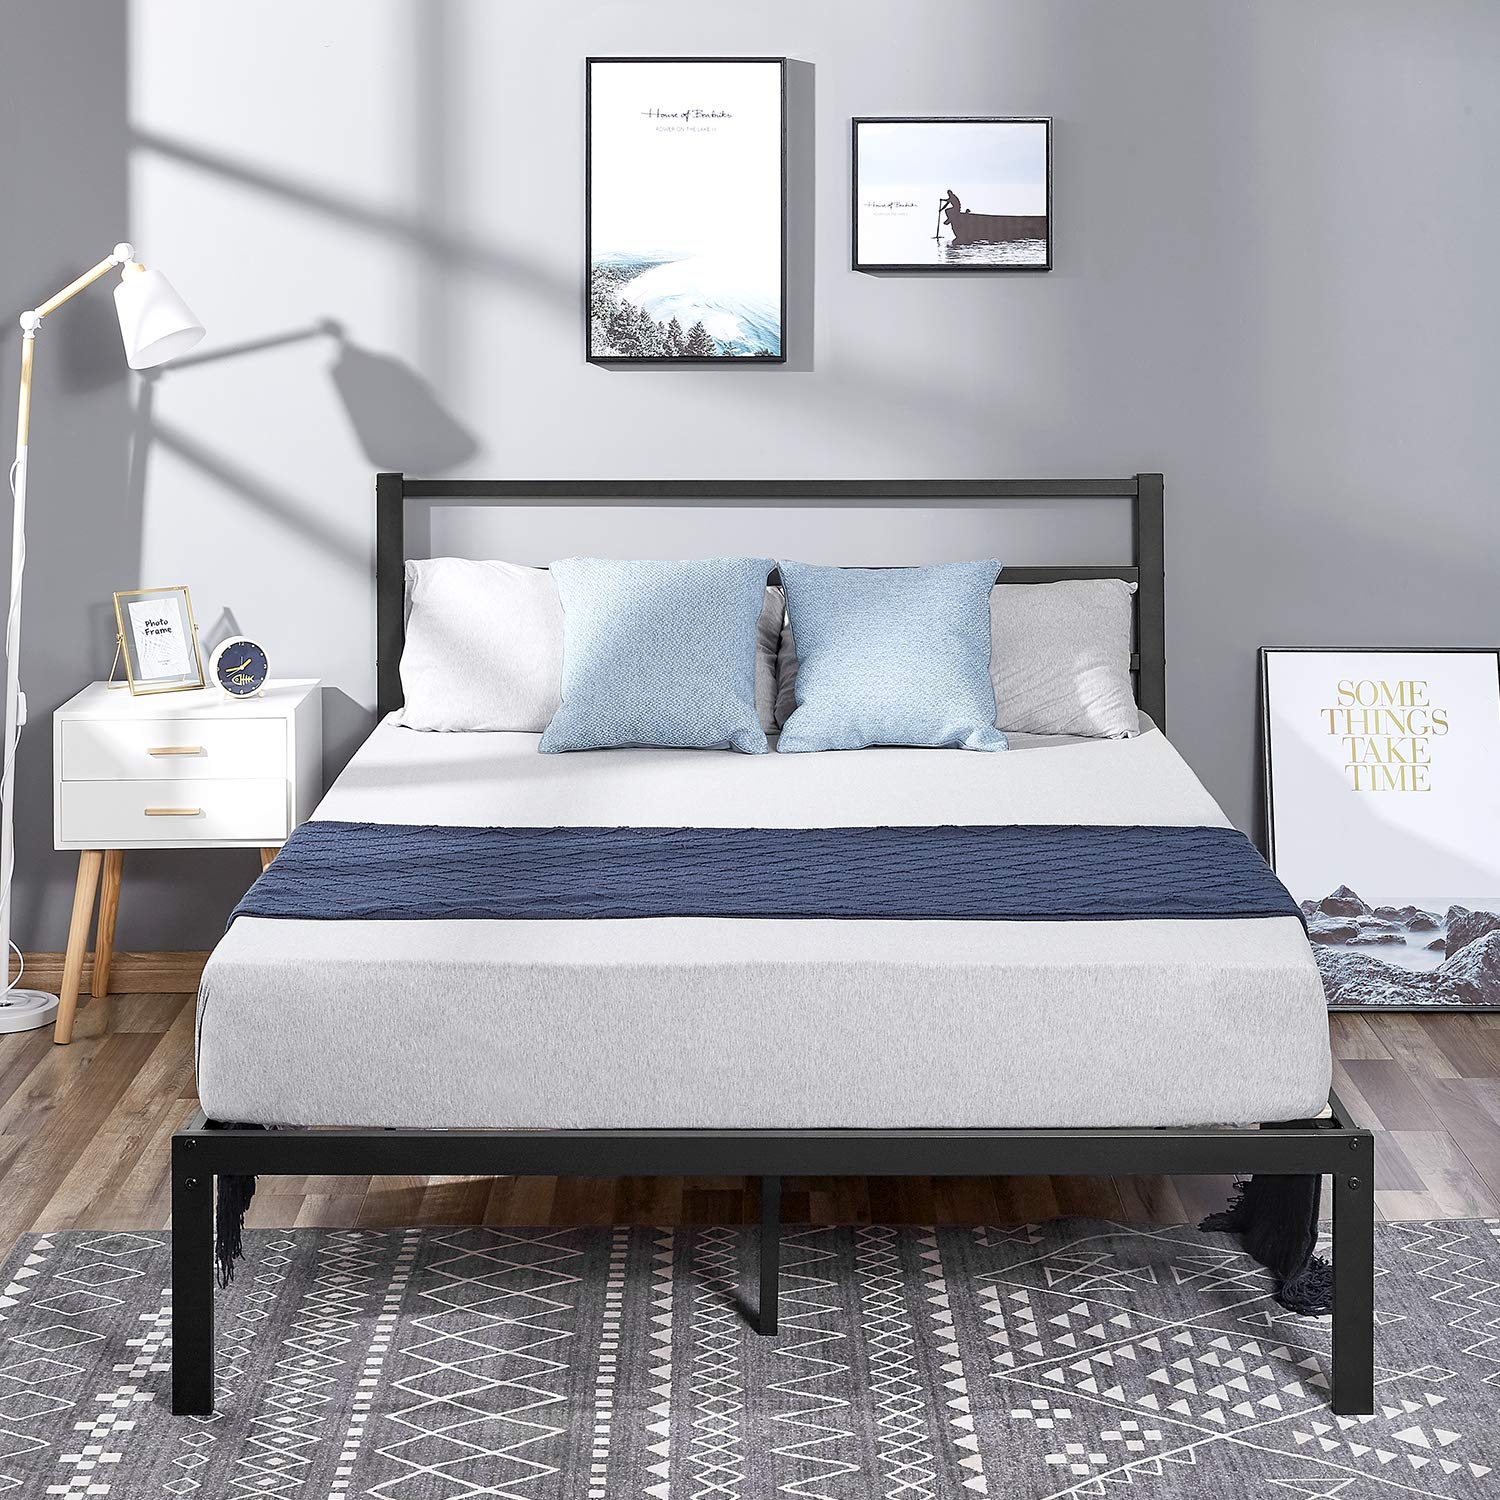 kealive Bed Frame with Headboard, Wooden Slats Bed Frame Noise-Free and Anti-Slip Mattress Foundation, No Box Spring Needed, Maximum Under-Bed Storage, Easy Assembly, Queen